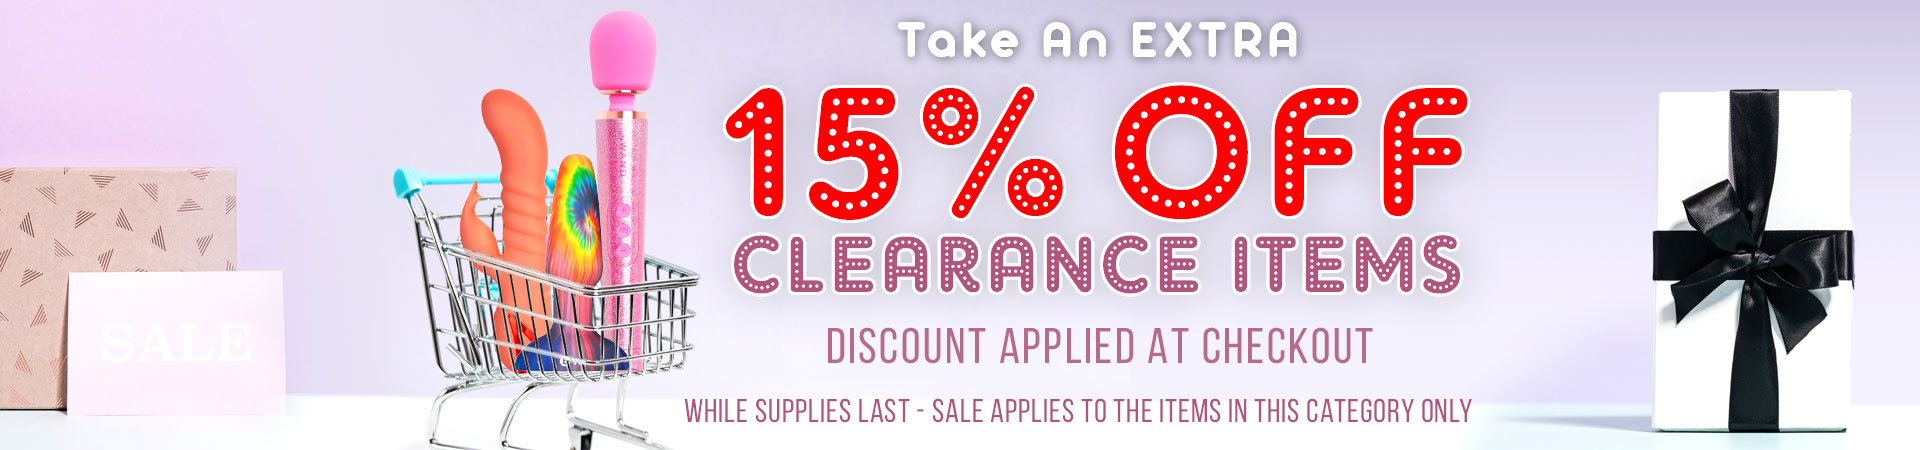 15% Off Clearance Items - Discount Applied At Checkout